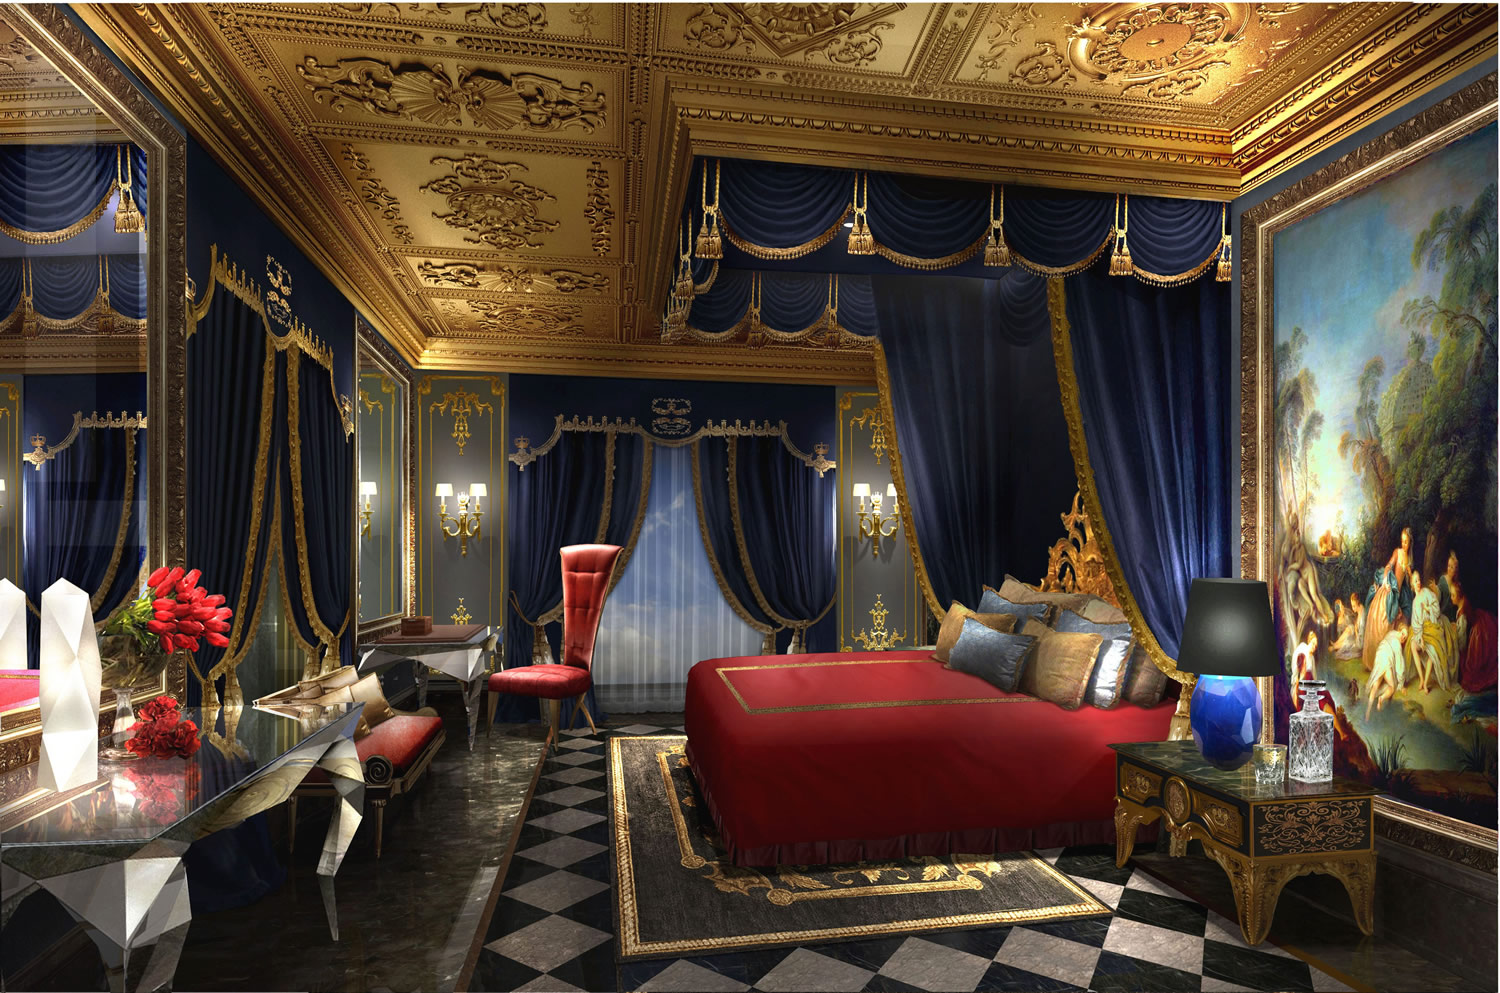 The 13 Hotel In Macau Opens Up At A Cost Of 7 Million Per